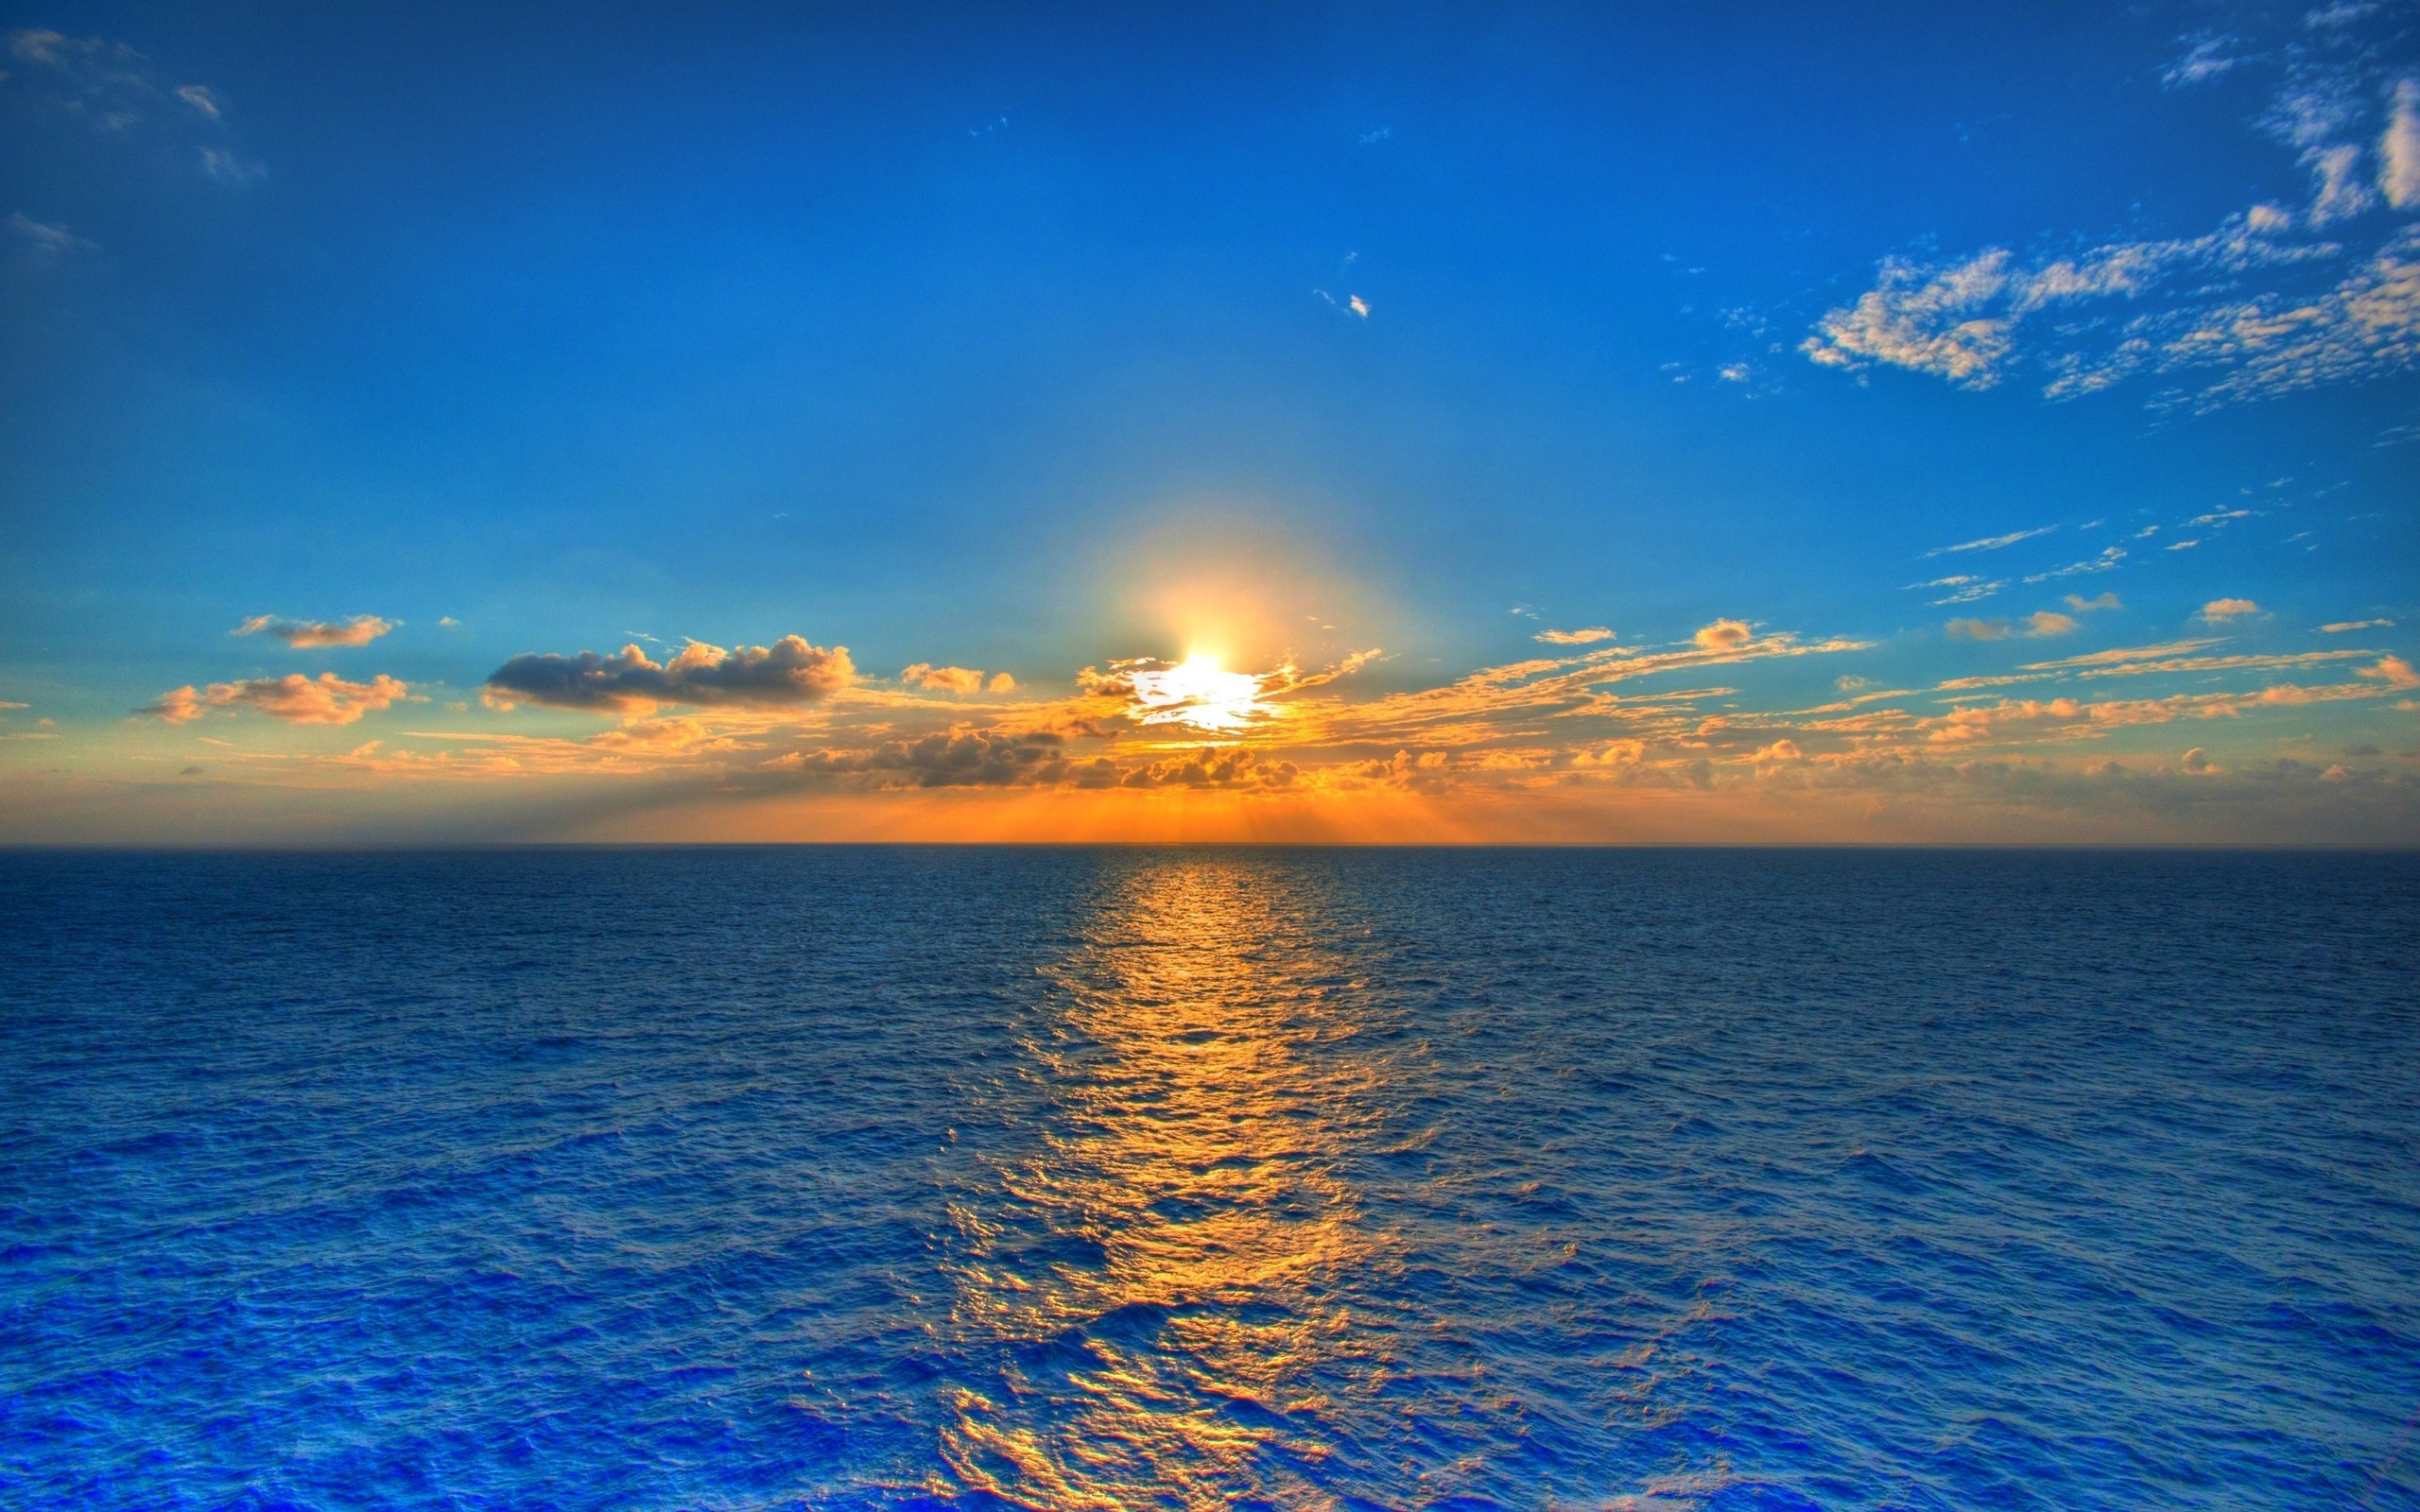 sunrise-sea.jpg